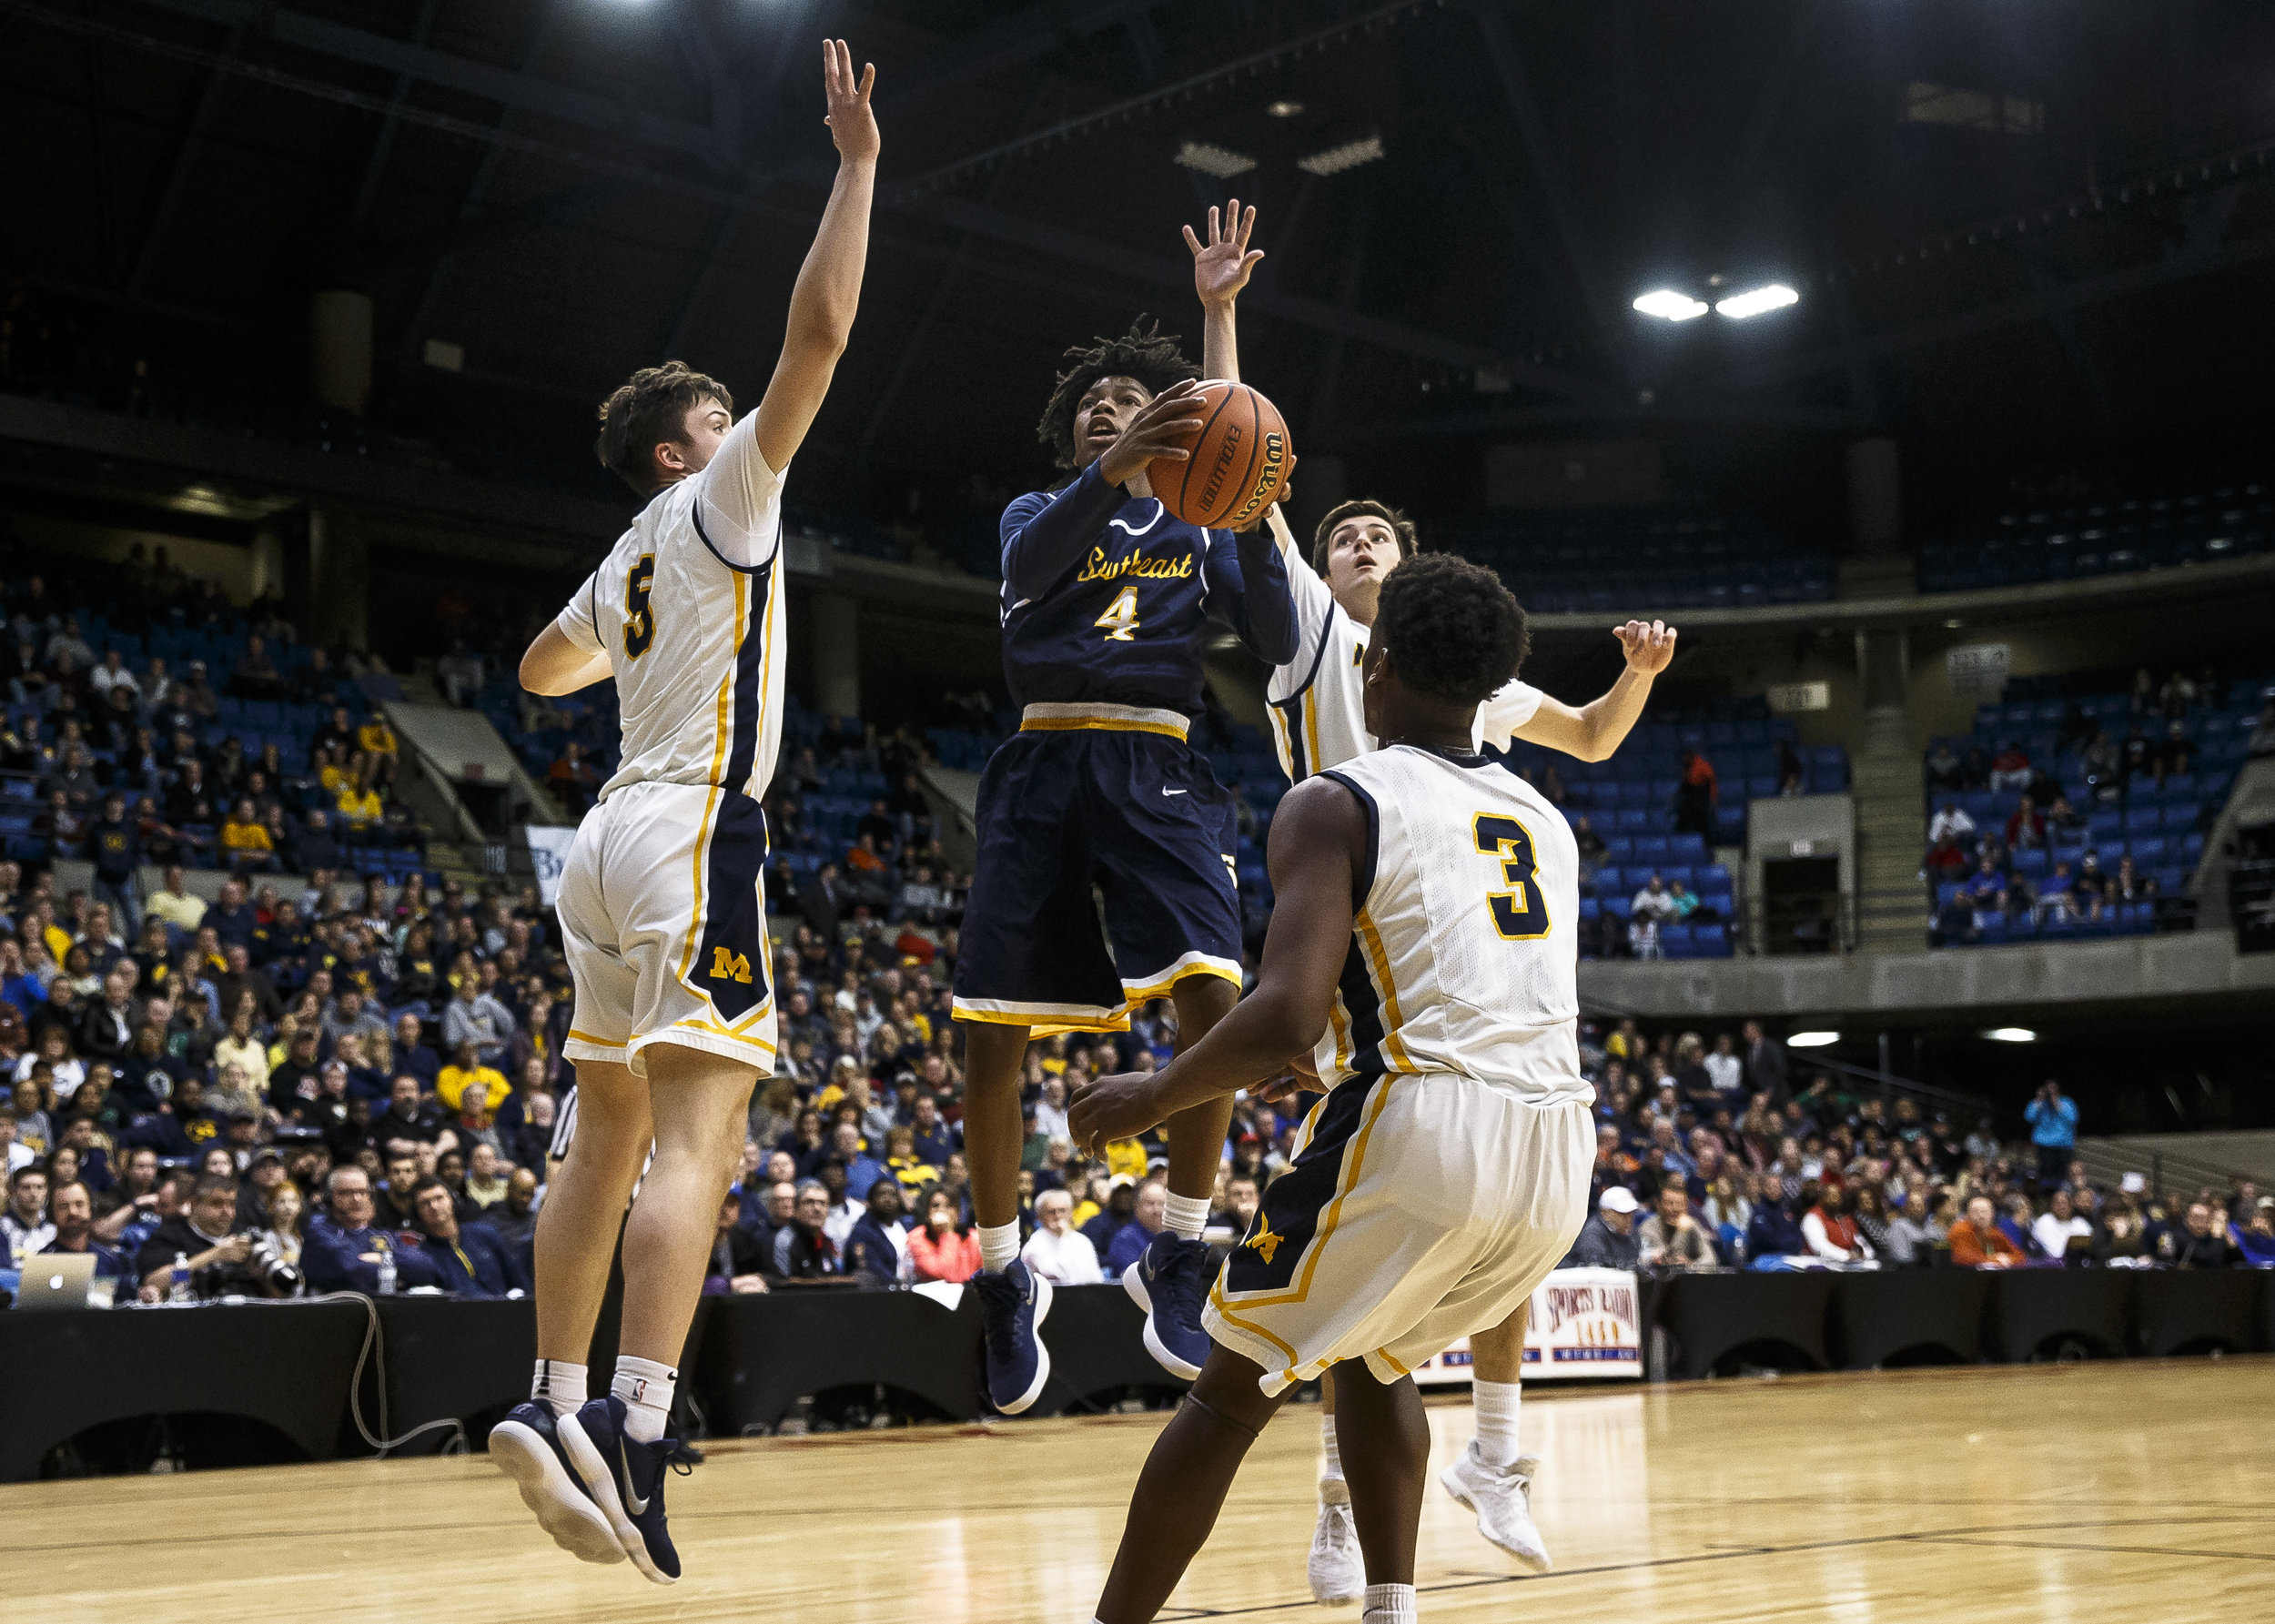 Southeast's Terrion Murdix (4) draws the triple team as he drives up to the basket against Marion in the first half during the Class 3A Springfield Supersectional at the Bank of Springfield Center, Tuesday, March 13, 2018, in Springfield, Ill. [Justin L. Fowler/The State Journal-Register]